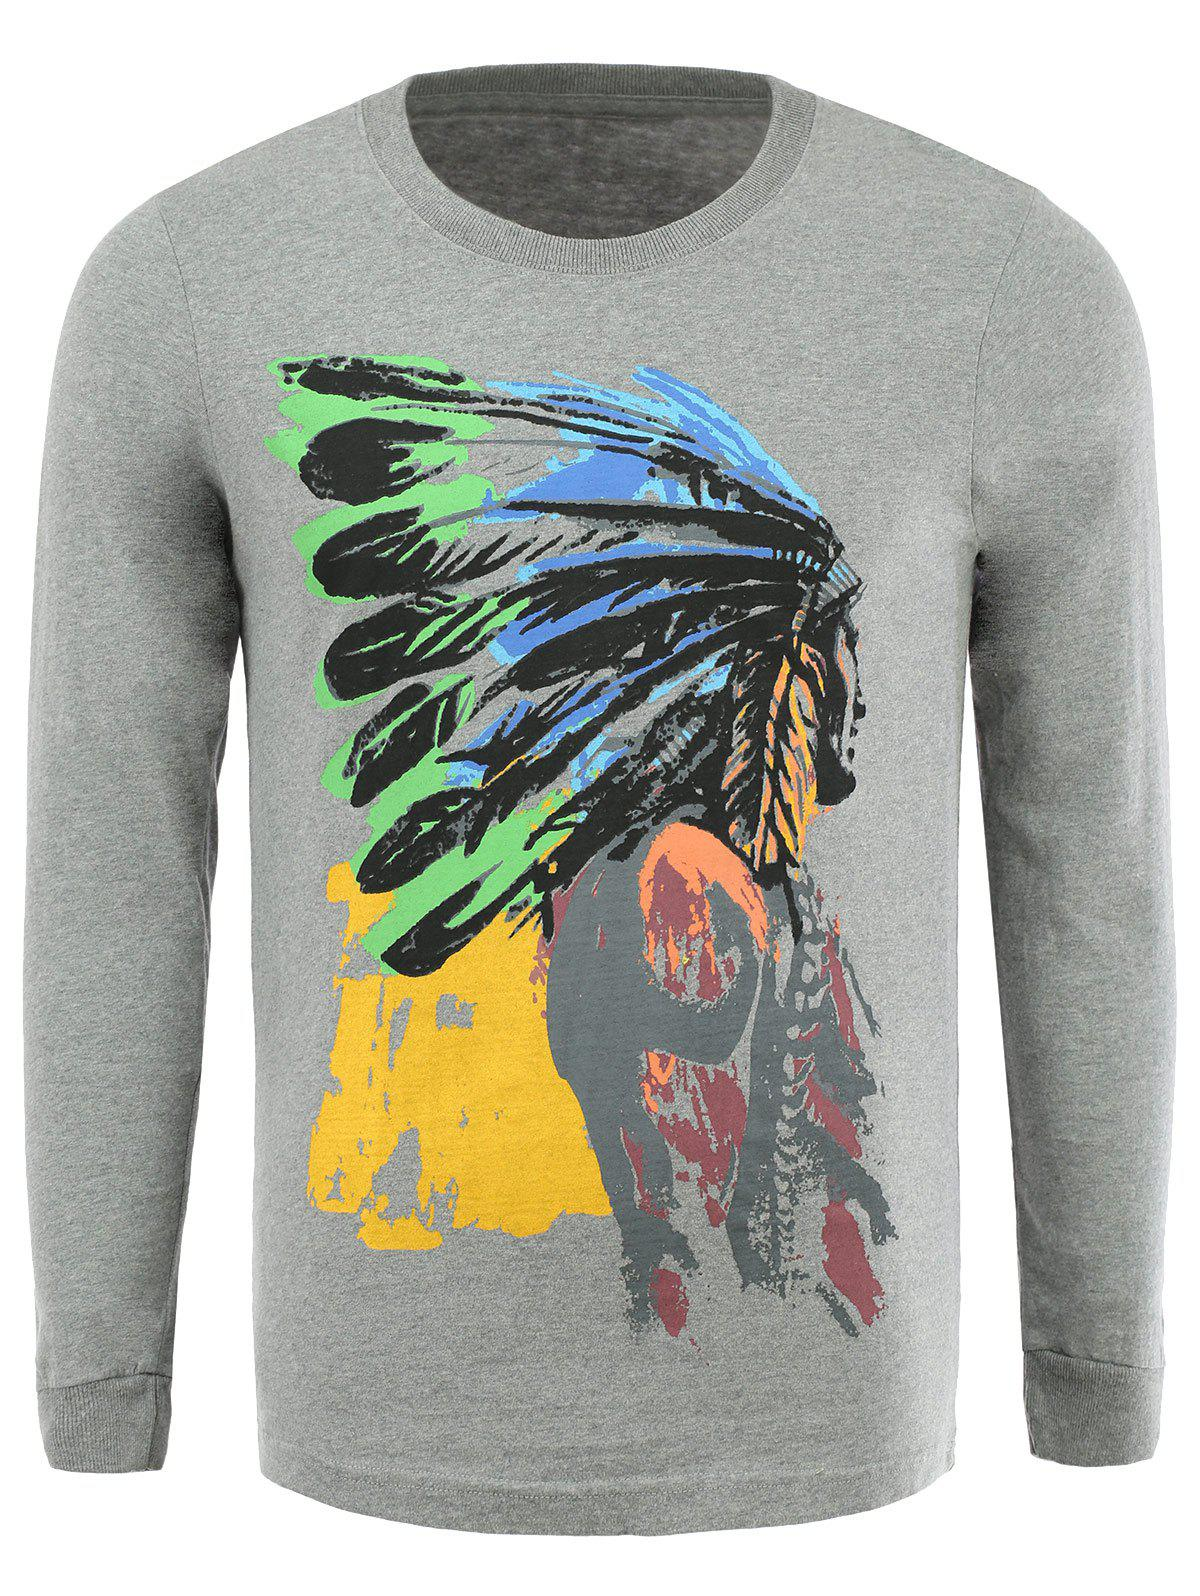 Cotton Blends 3D Vintage Indians Print Round Neck Long Sleeve T-Shirt - GRAY 3XL